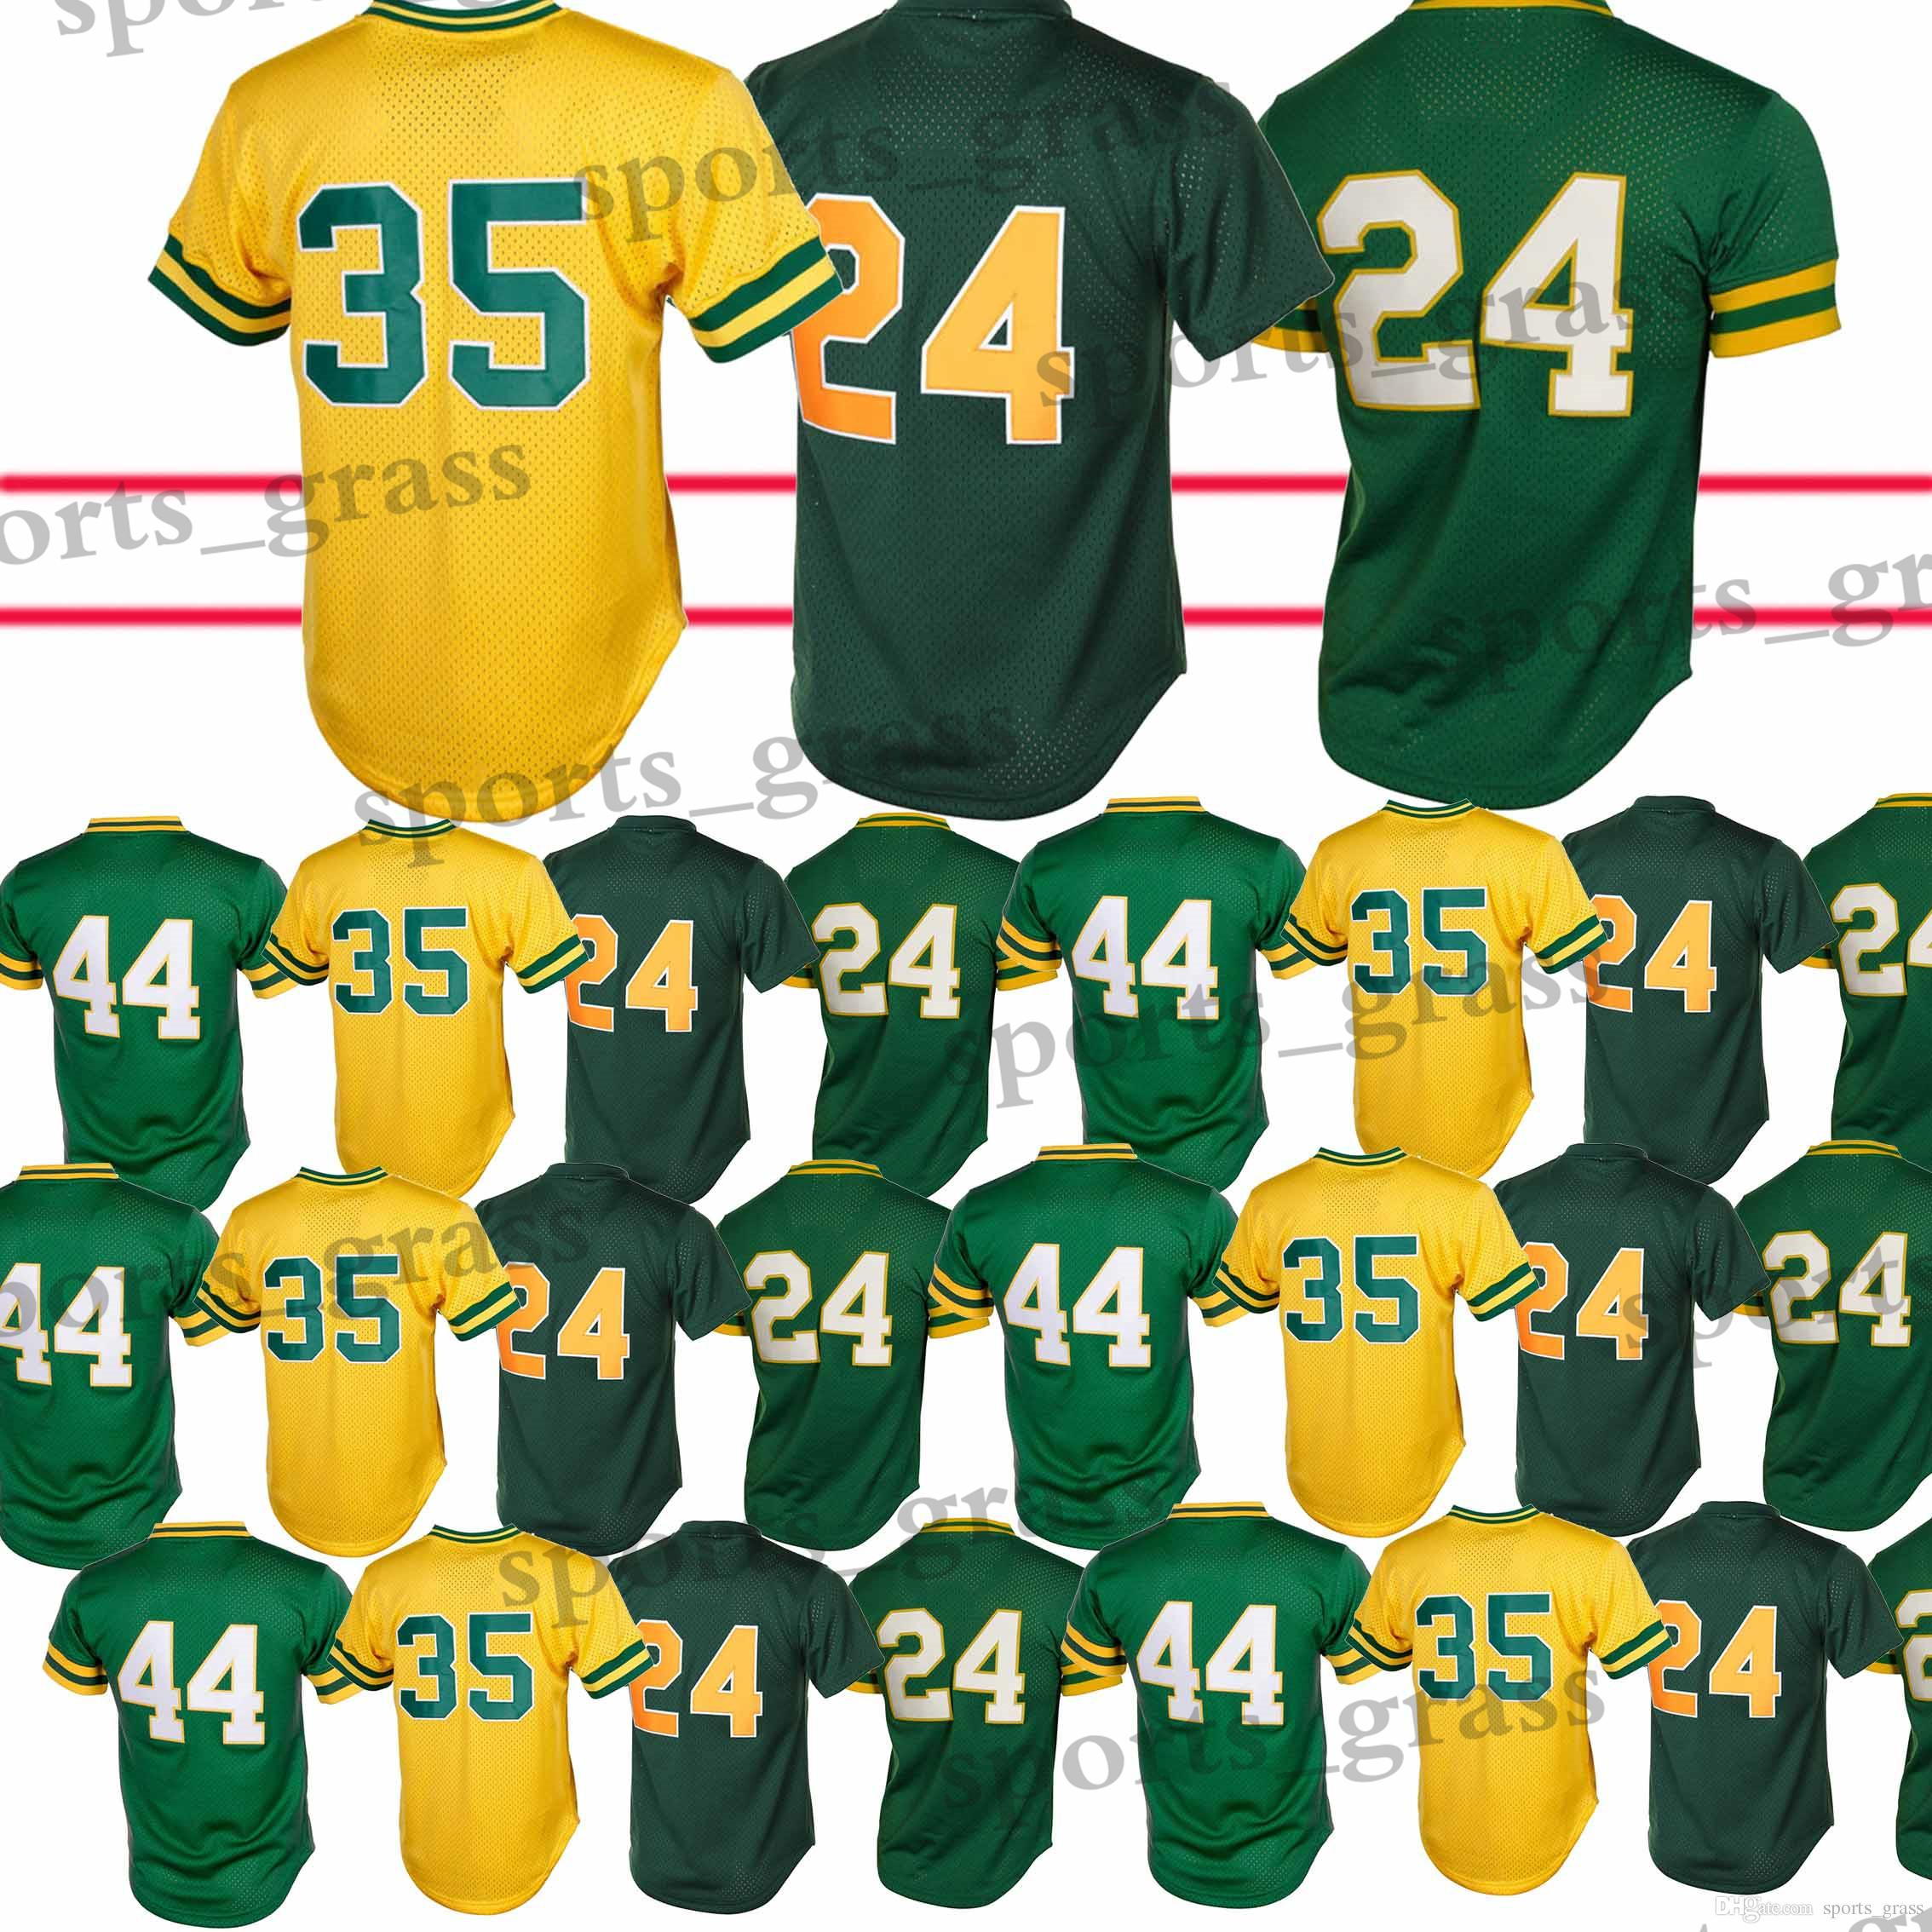 brand new 7d610 8069d Oakland Athletics Baseball Jerseys 24 Rickey Henderson 44 Reggie Jackson  Baseball Jersey Adult shirt Top quality